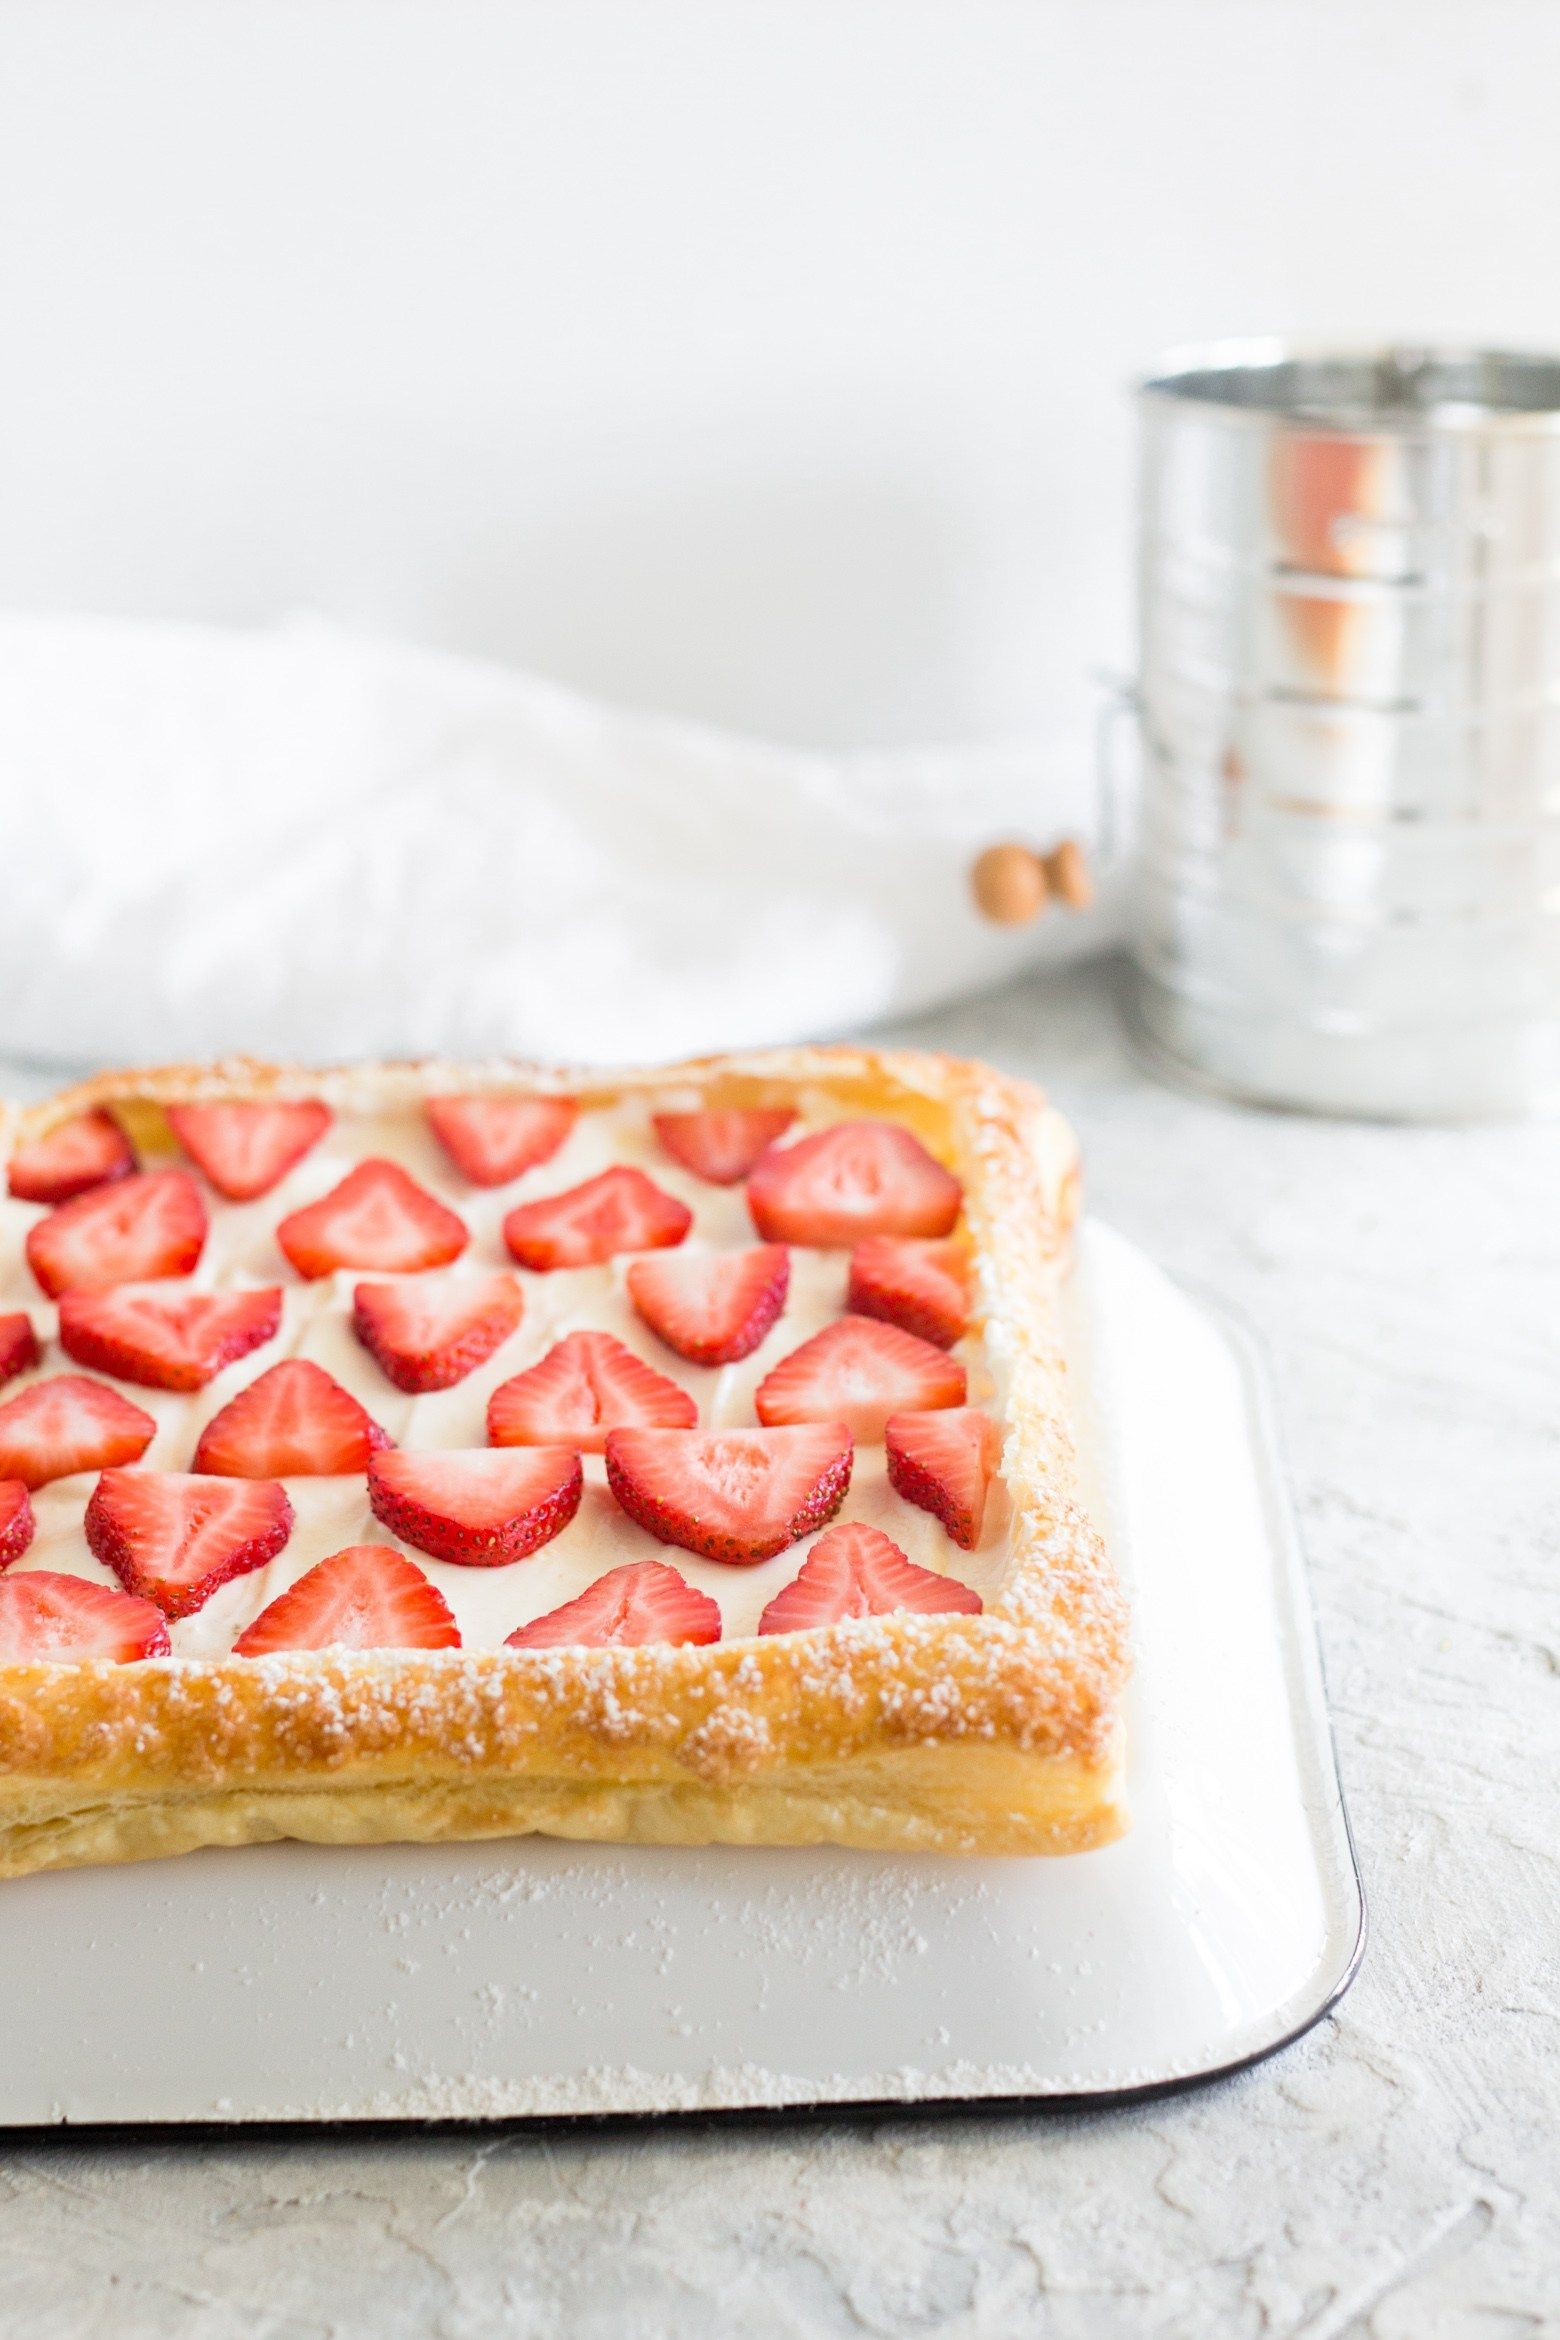 Strawberry Cream Cheese Tart with Puff Pastry - Jamie Kamber